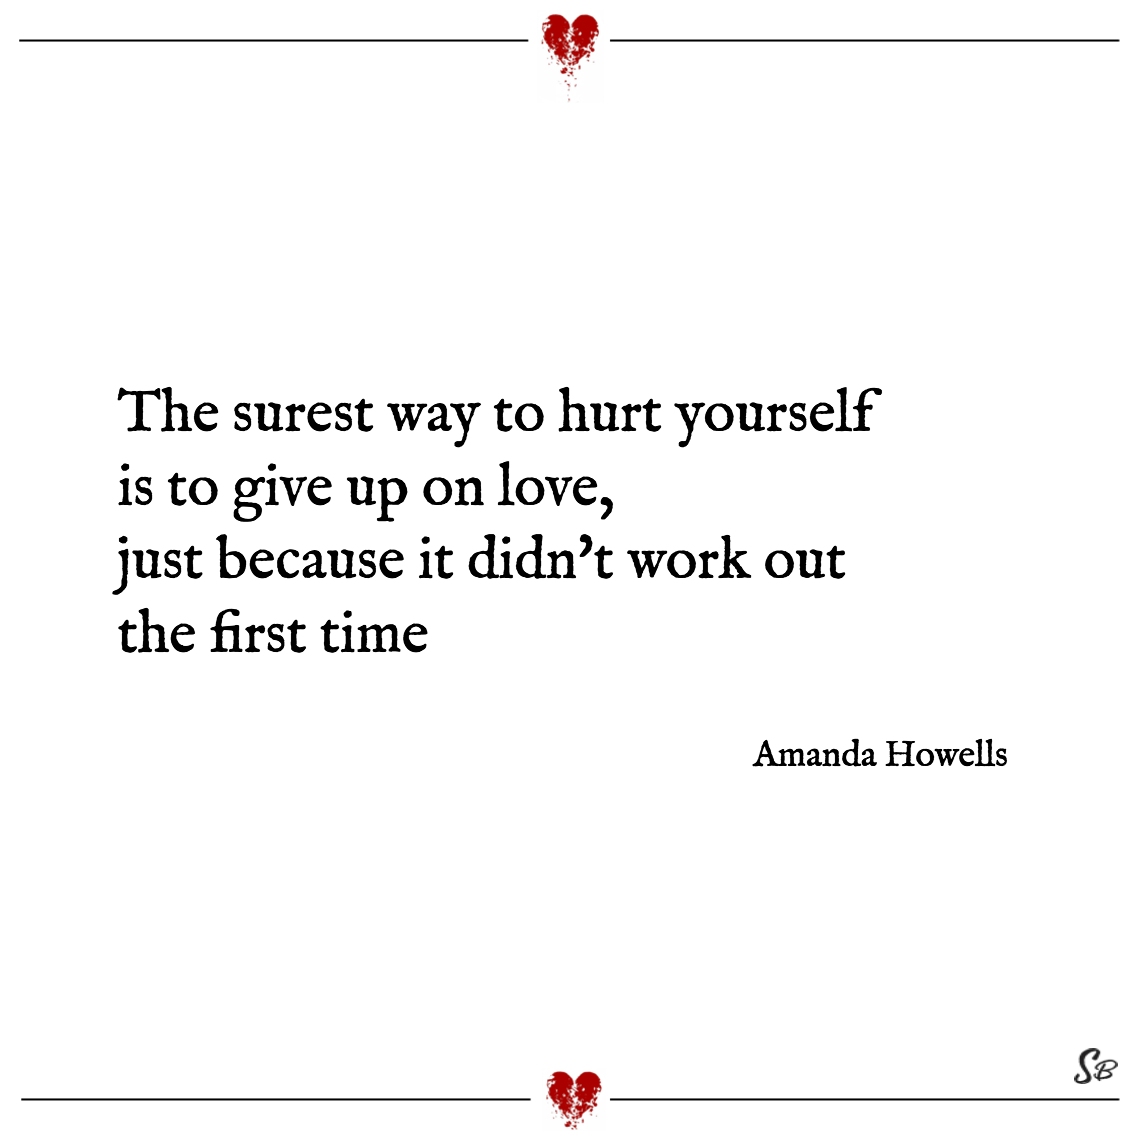 The surest way to hurt yourself is to give up on love, just because it didn't work out the first time amanda howells